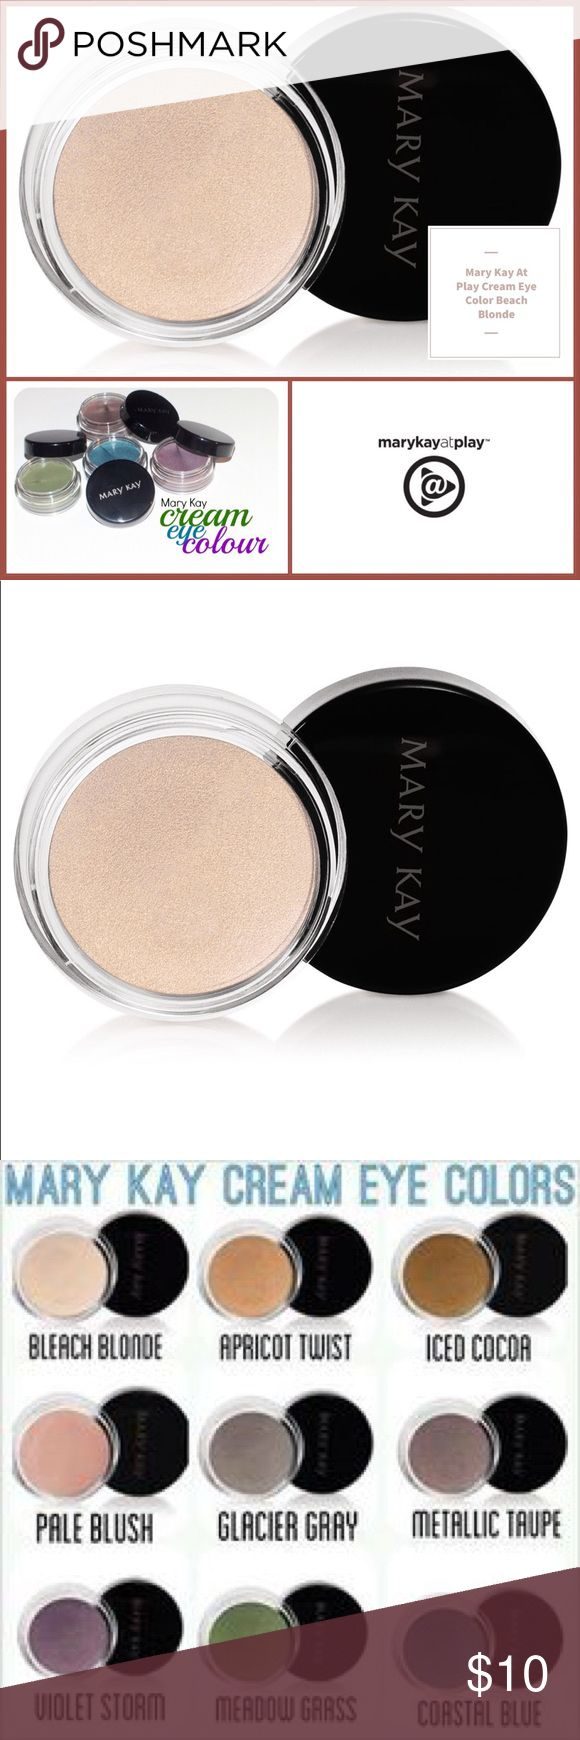 🆕 Mary Kay Cream Eye Color Beach Blonde 🆕 Mary Kay Cream Eye Color Beach Blonde ▪️This soft, creamy, long-wearing formula glides on easily, lasts for 10 hours and can be applied in multiple layers to deliver more noticeable color while retaining a lightweight feel. ▪️Can be used alone or as a primer under mineral eye color. ▪️Dries quickly & does not transfer. ▪️Oil- and fragrance-free. ▪️Clinically tested for skin irritancy and allergy, suitable for sensitive skin and eyes. ▪️Note: In…